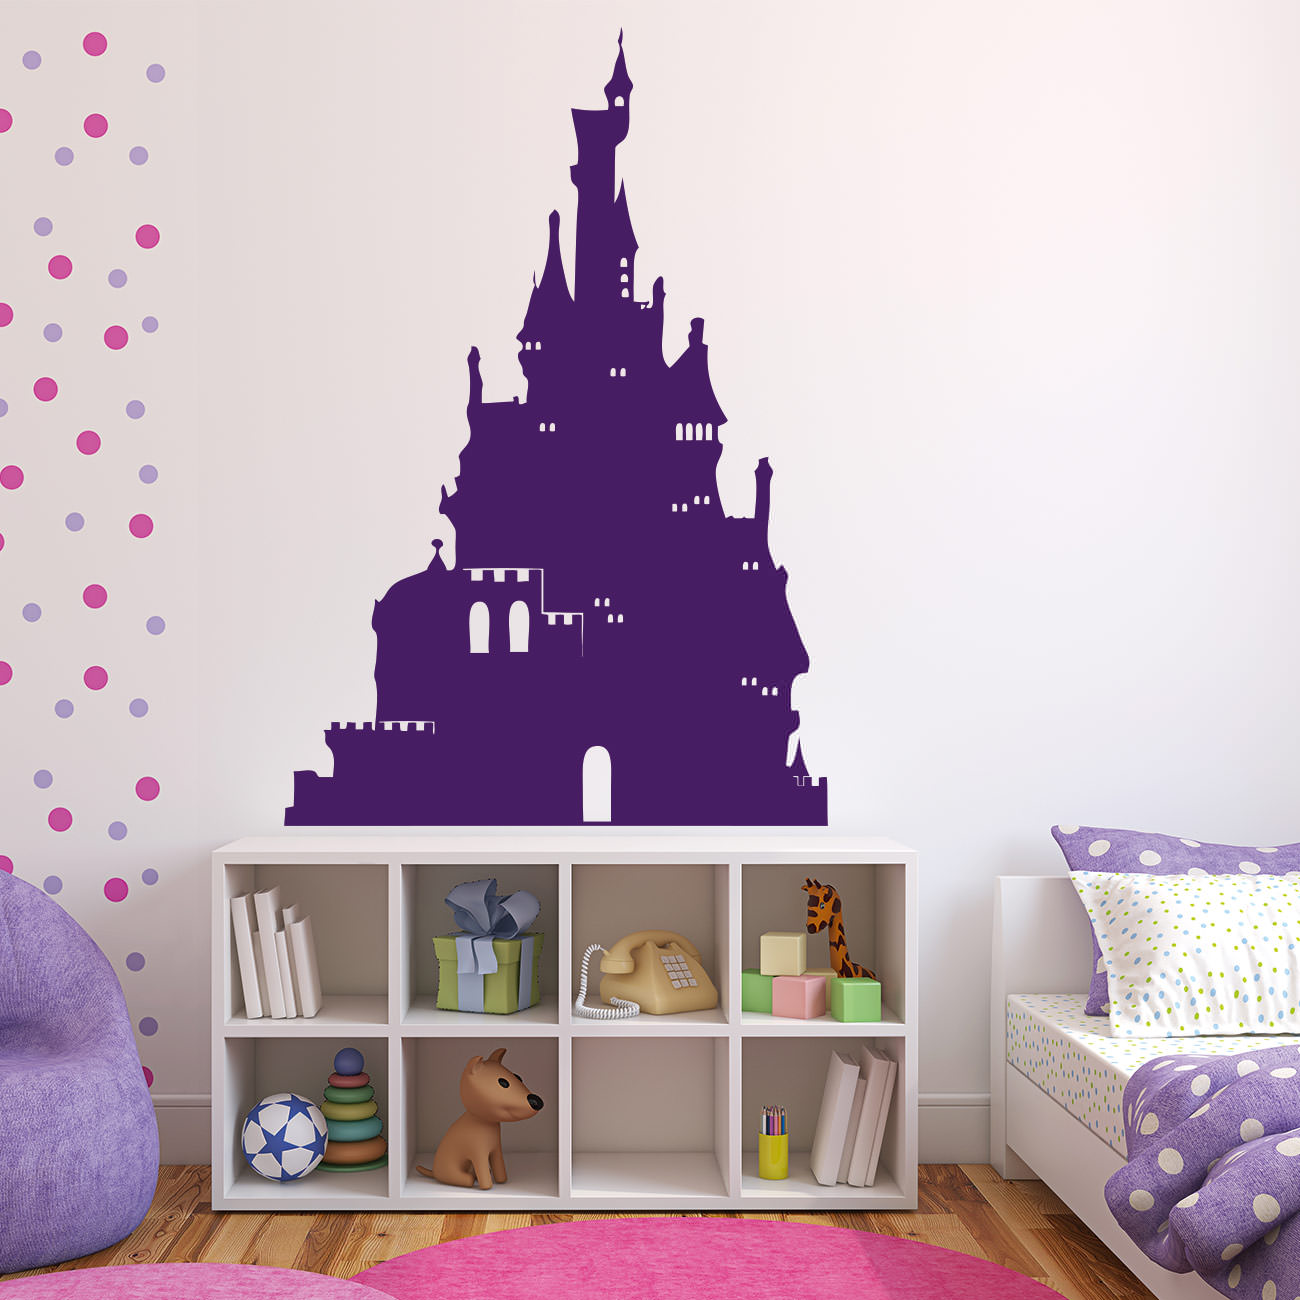 prinzessin schloss f r wohnzimmer kinderzimmer. Black Bedroom Furniture Sets. Home Design Ideas